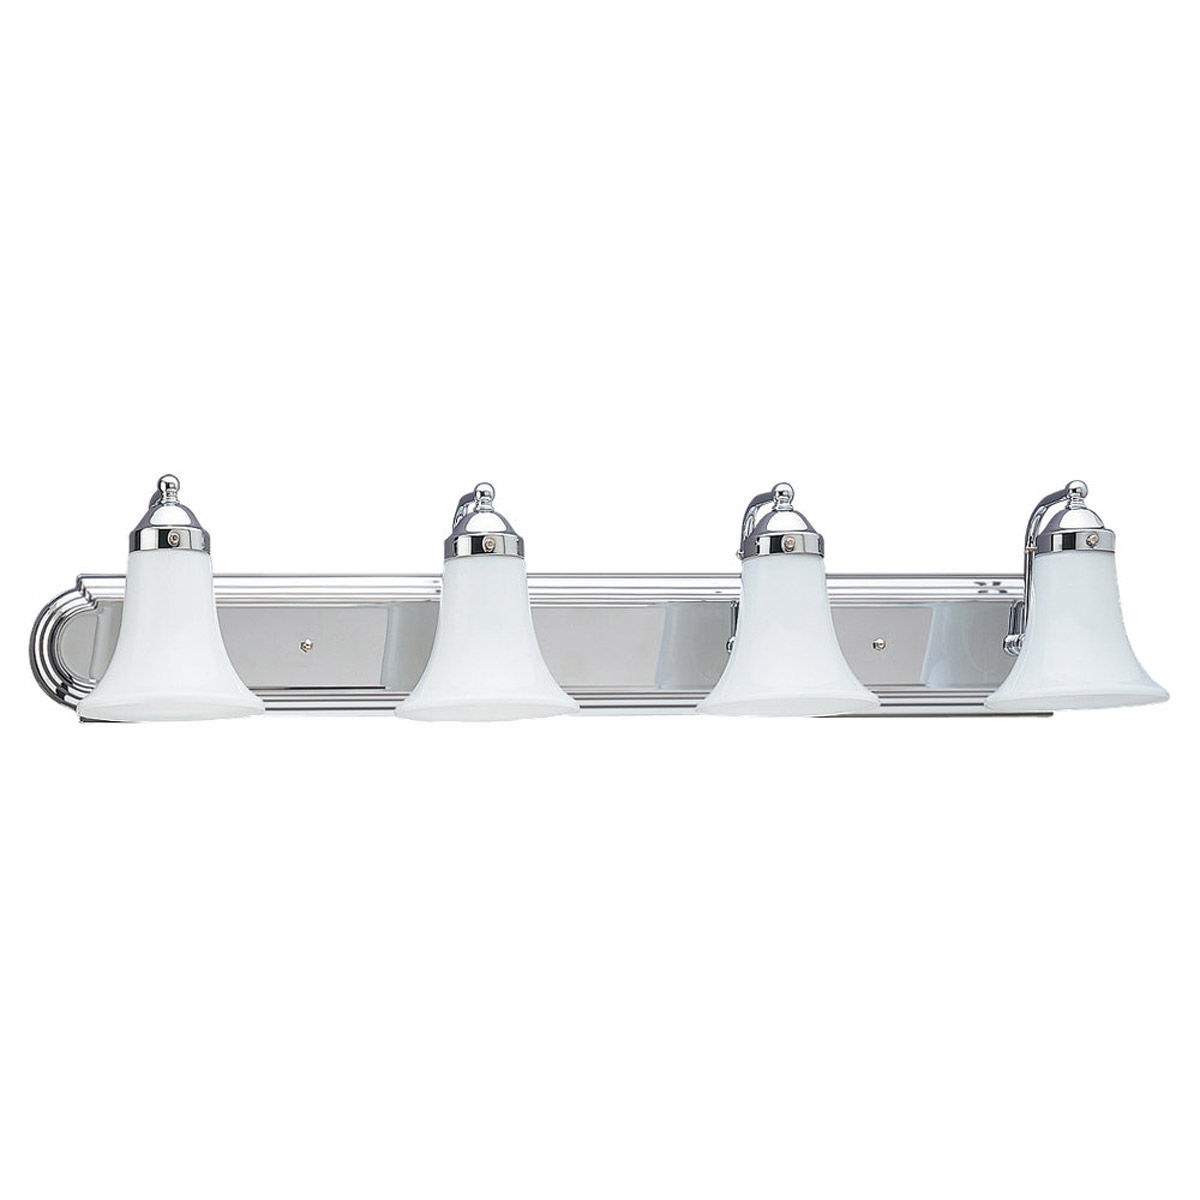 Sea Gull Lighting Astoria 4 Light Bath Vanity in Chrome 4860-05